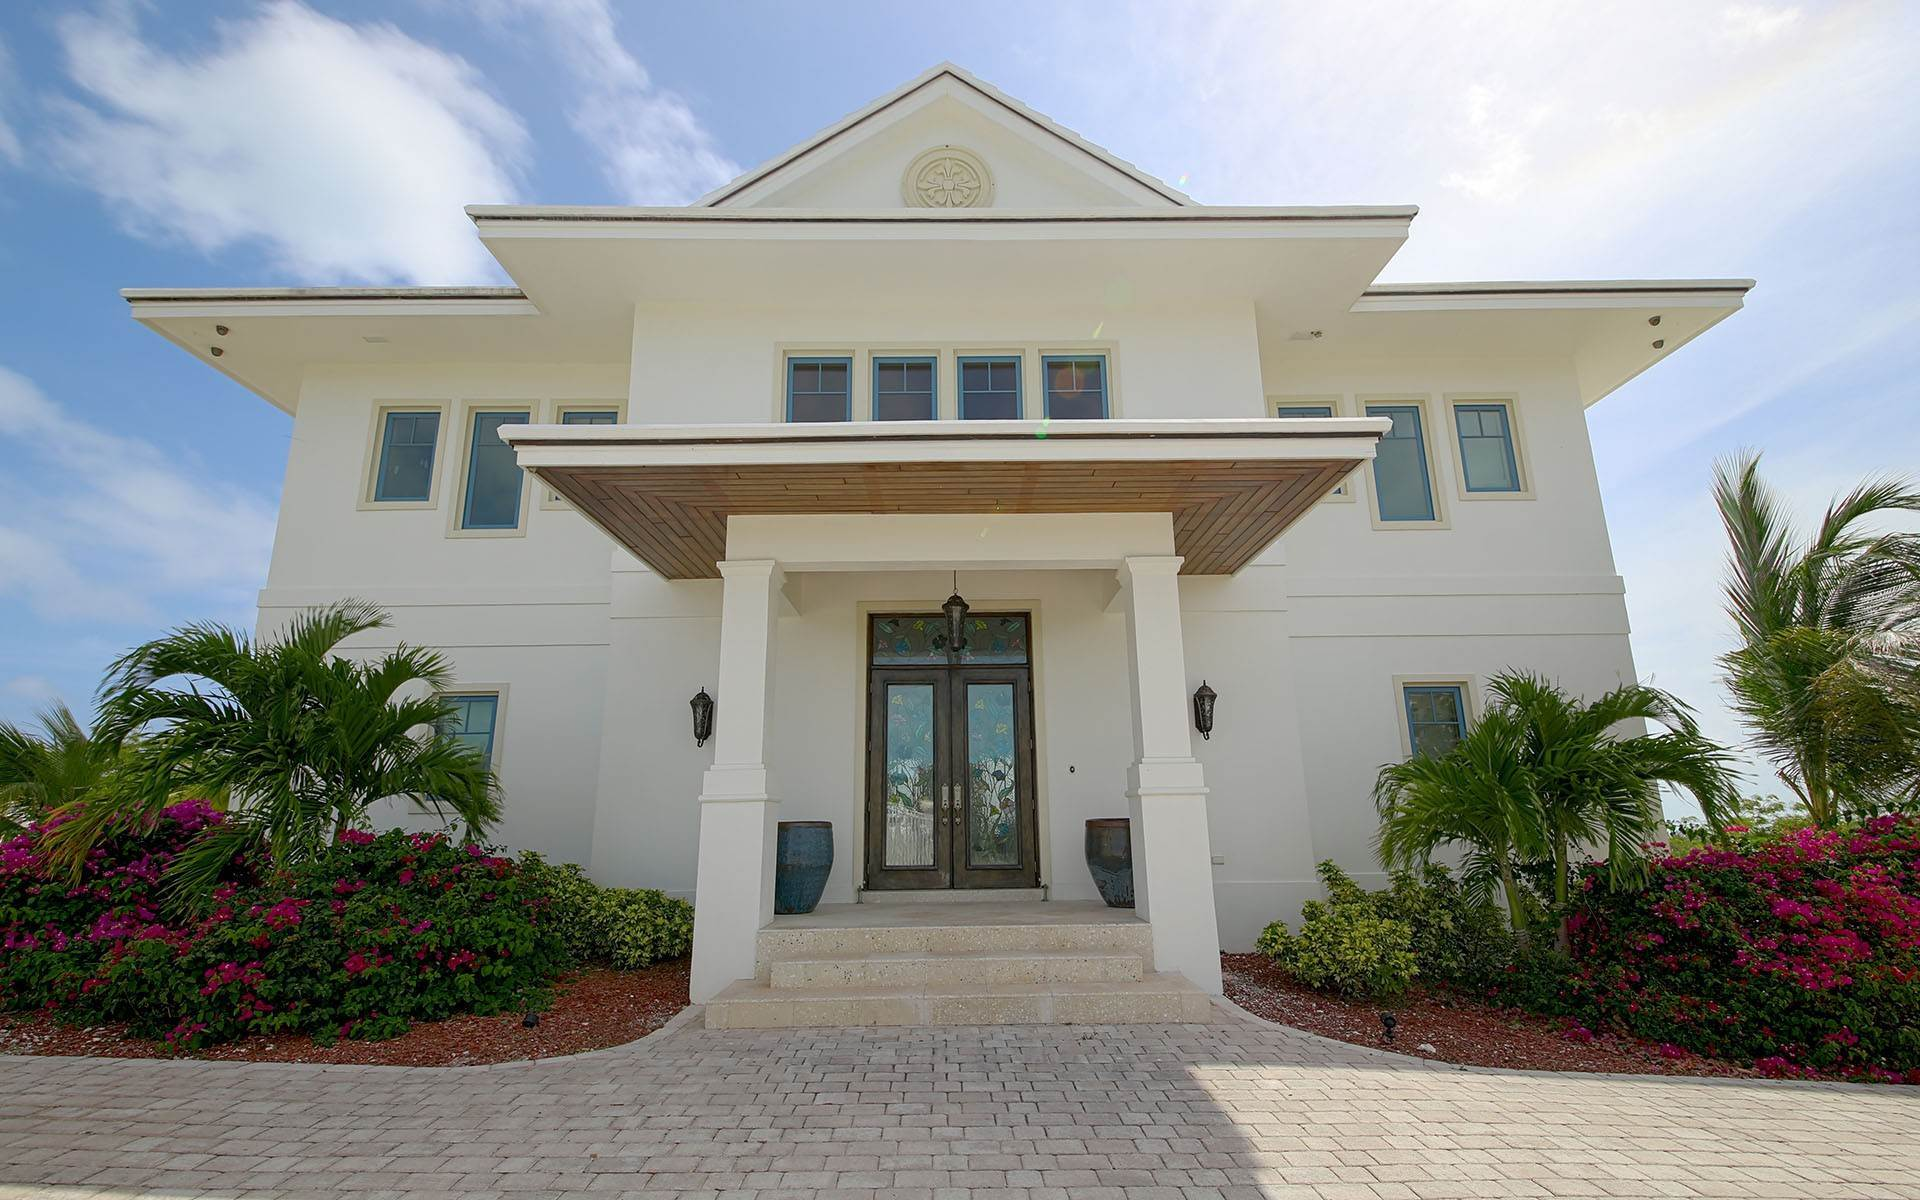 Single Family Homes for Sale at White Heather - Estate Home with Expansive Ocean Views - MLS 30053 Exuma, Bahamas